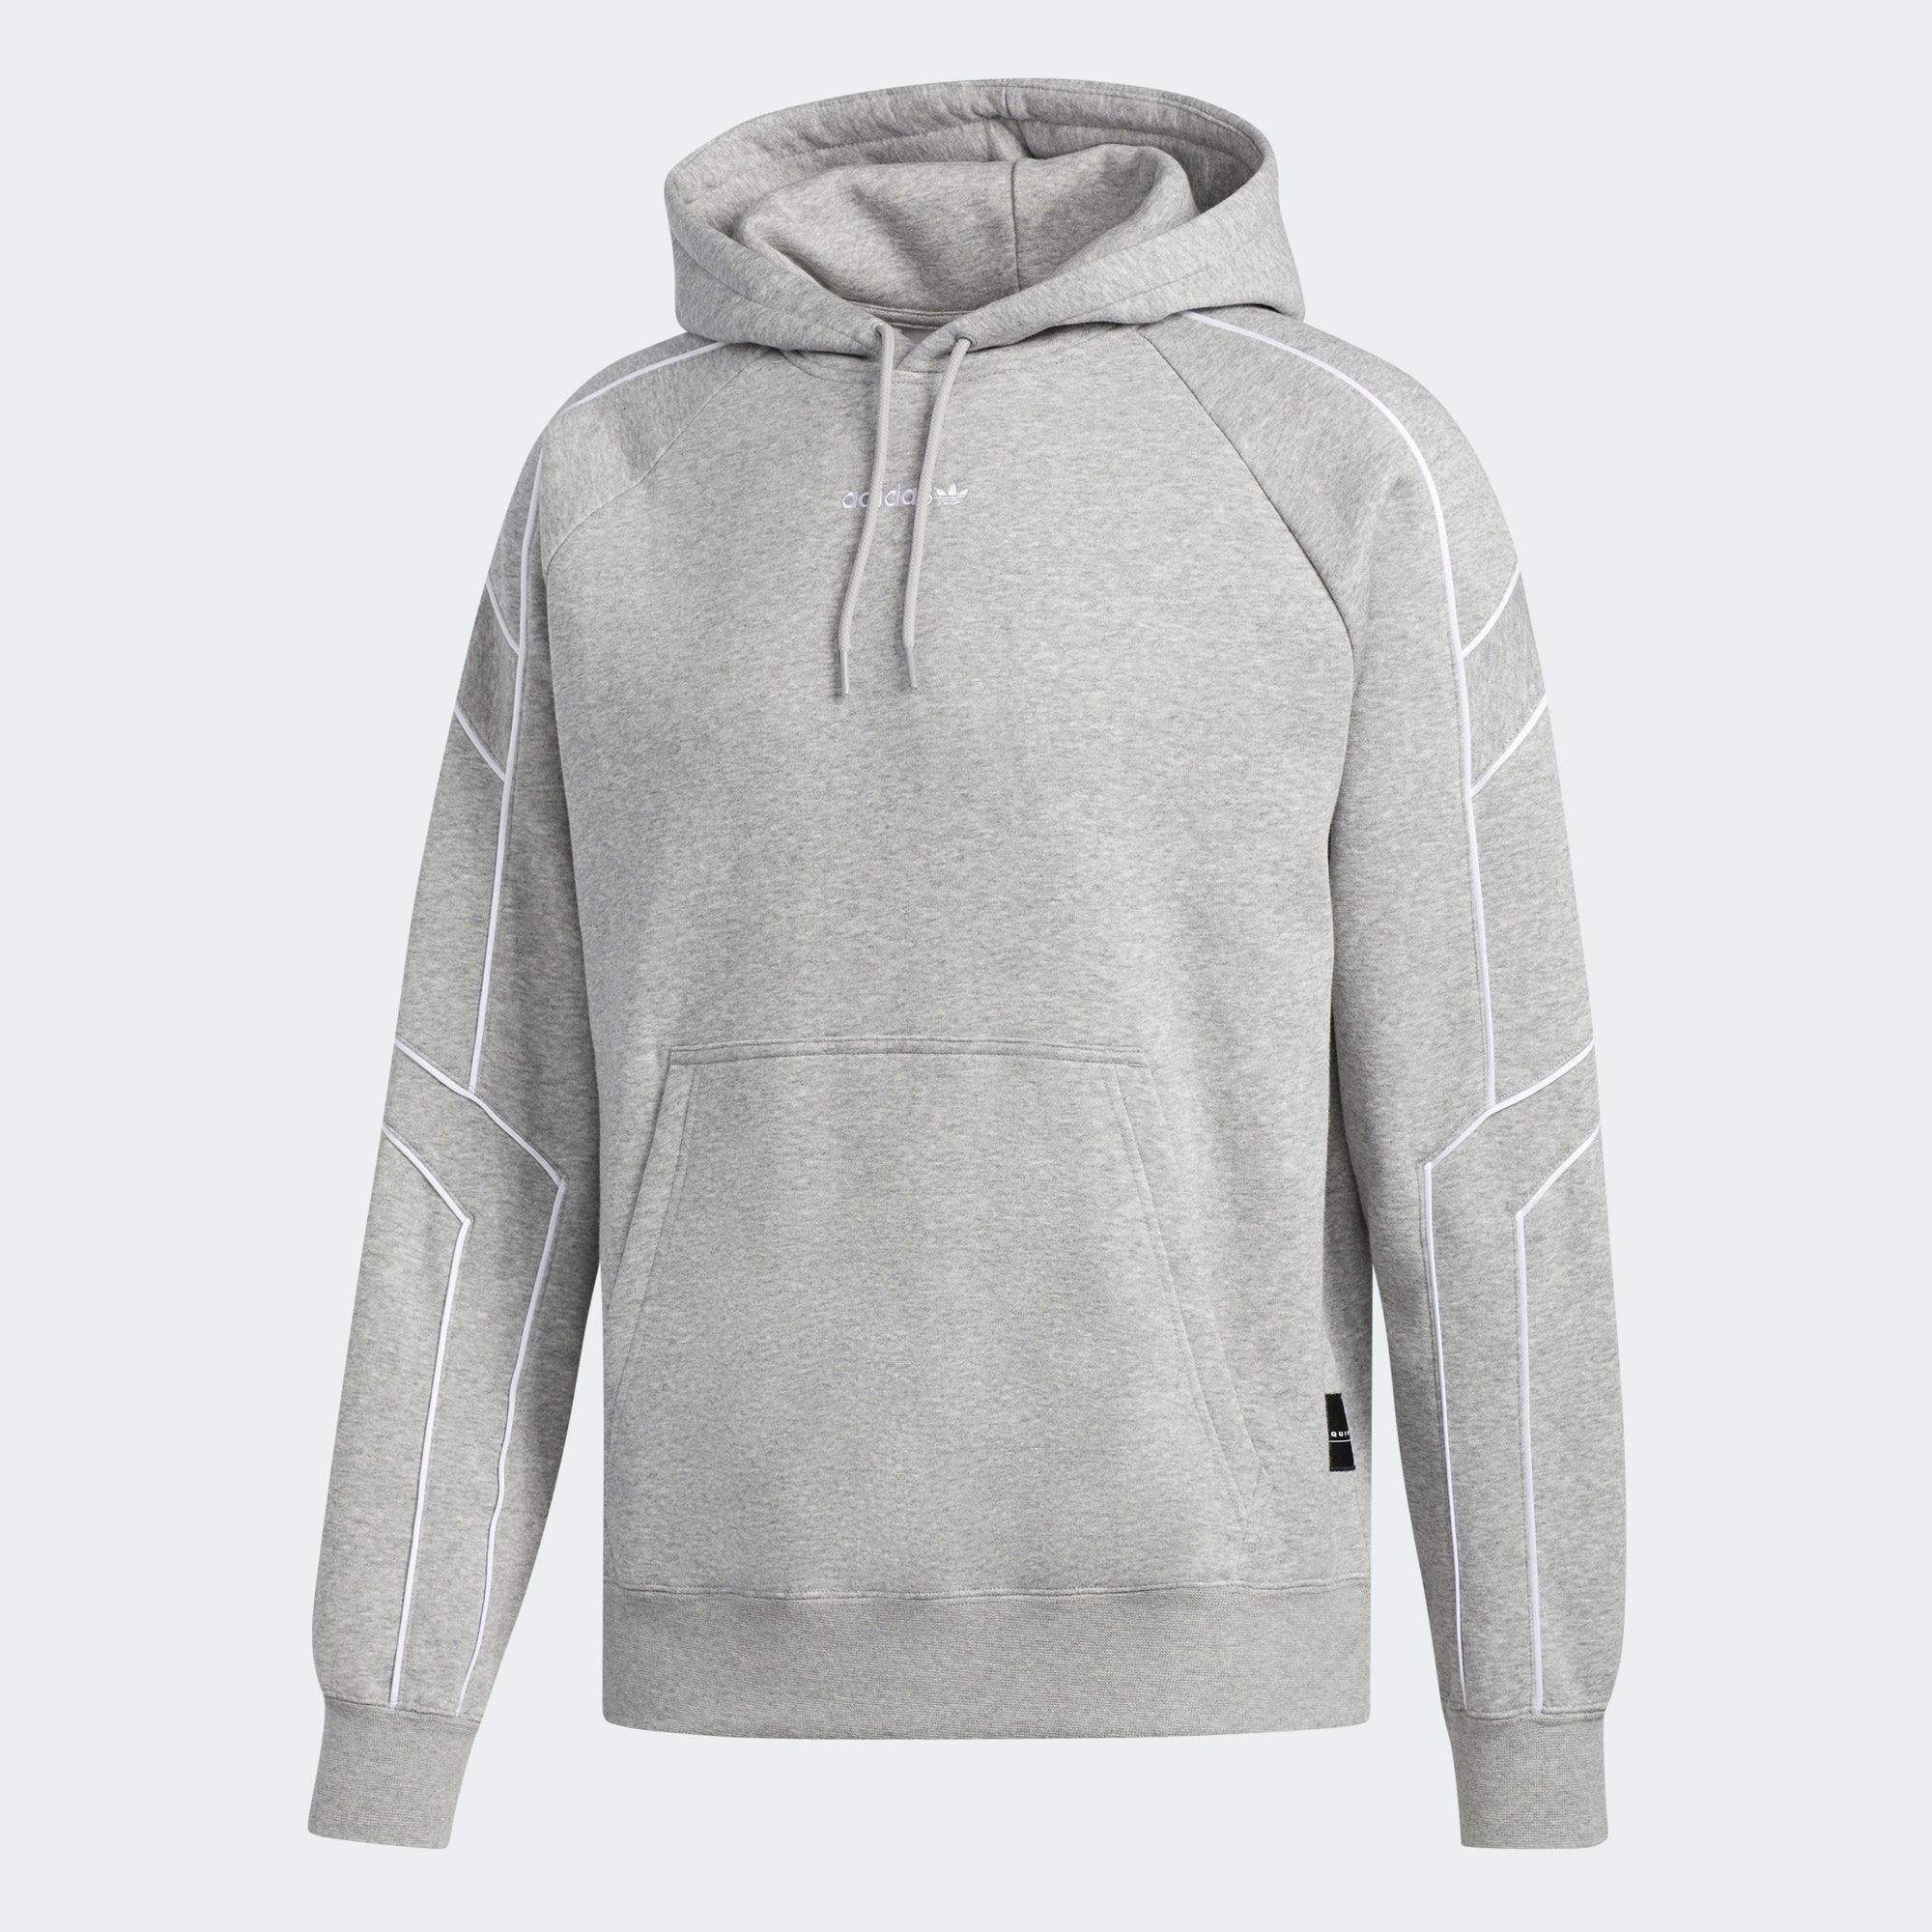 adidas EQT Outline Hoodie Grey DH5217